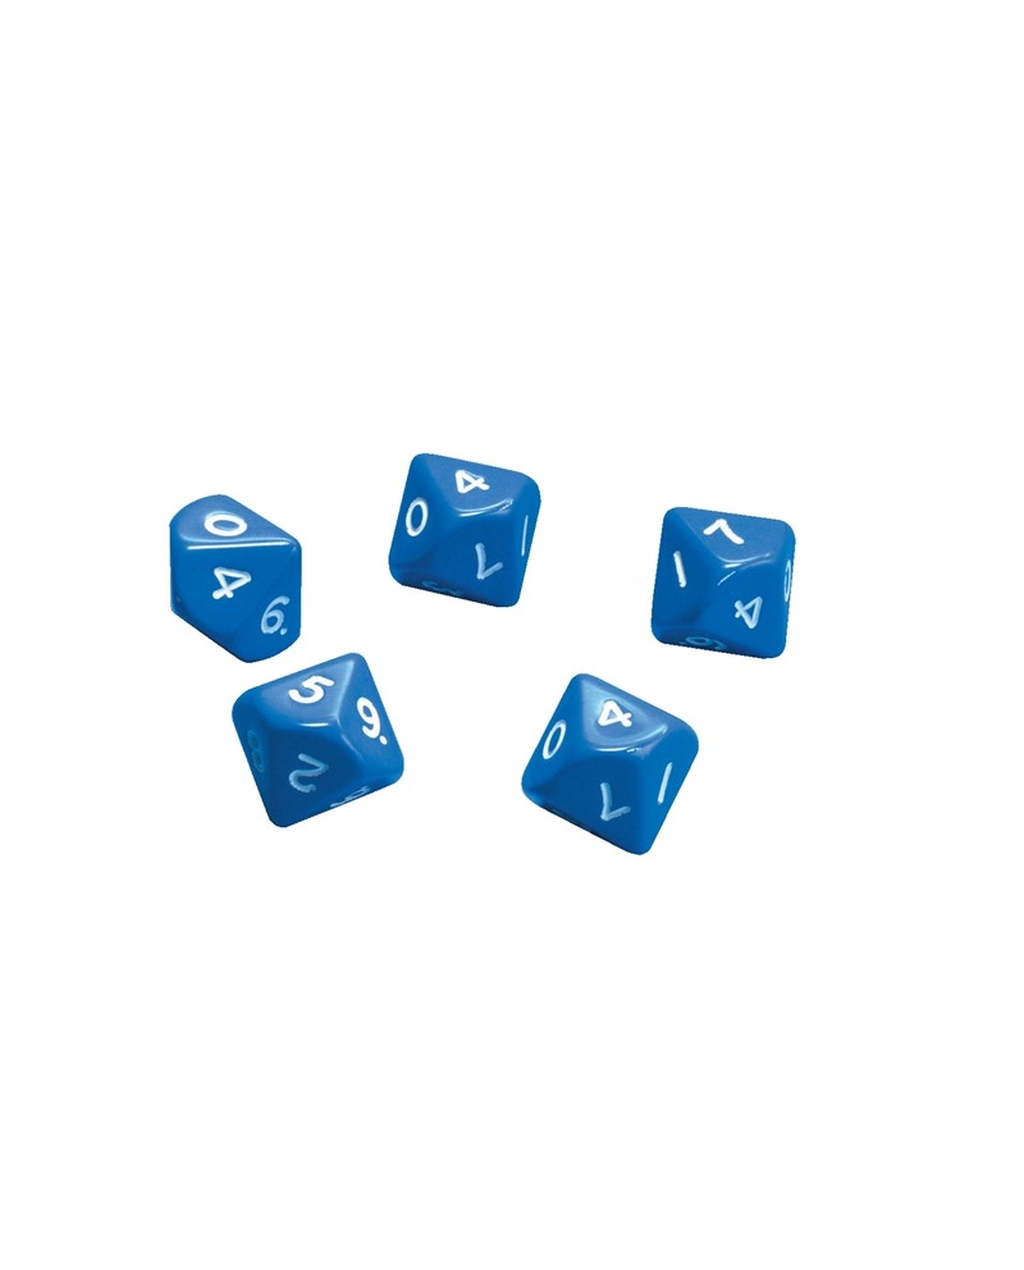 10 Sided Numbered Dice